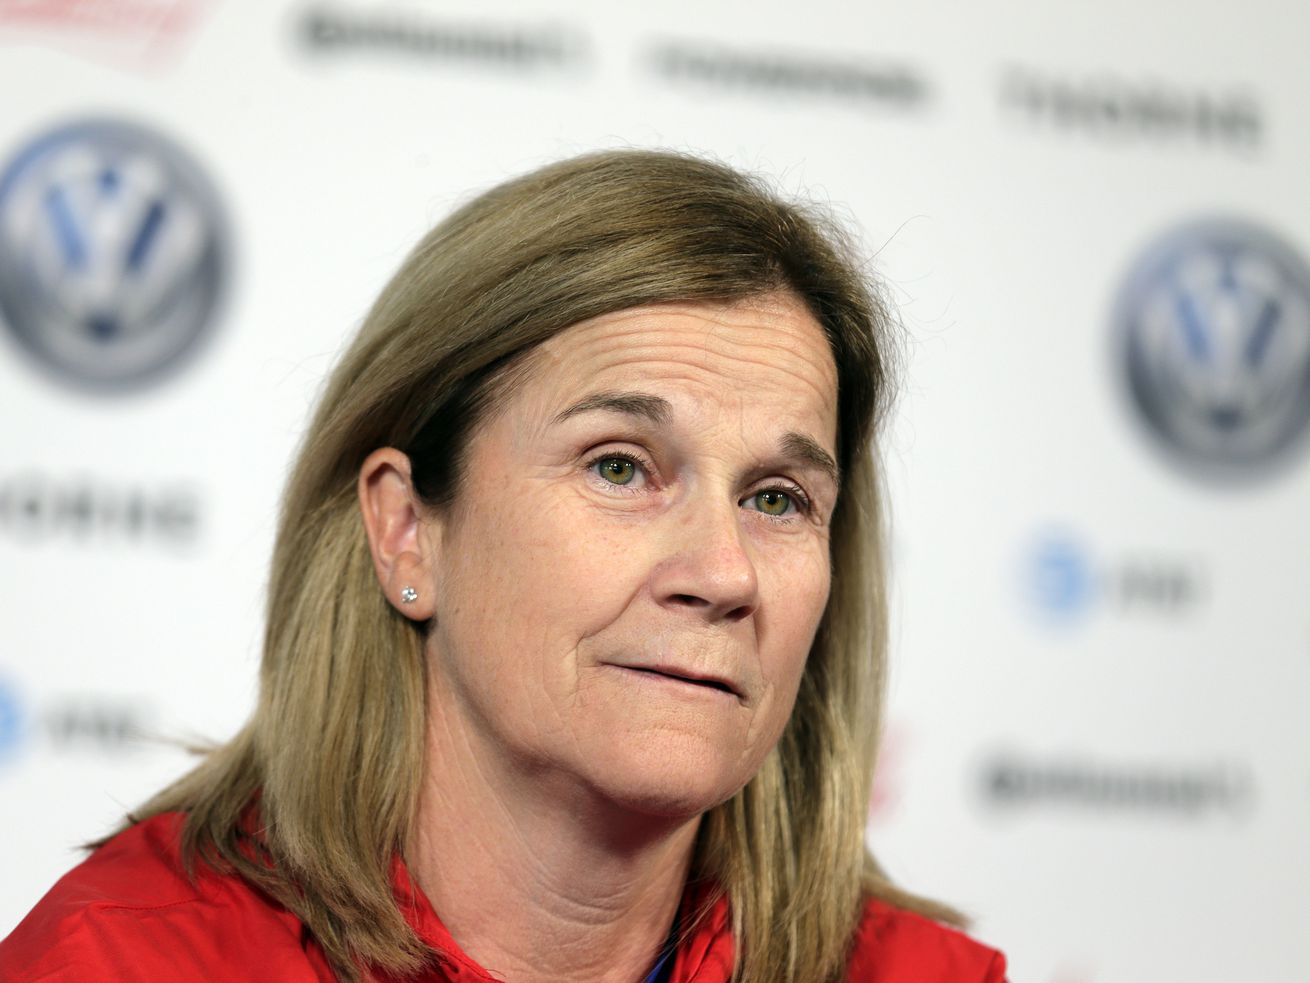 Former U.S. national team coach Jill Ellis will serve as president of a National Women's Soccer League expansion team in San Diego.